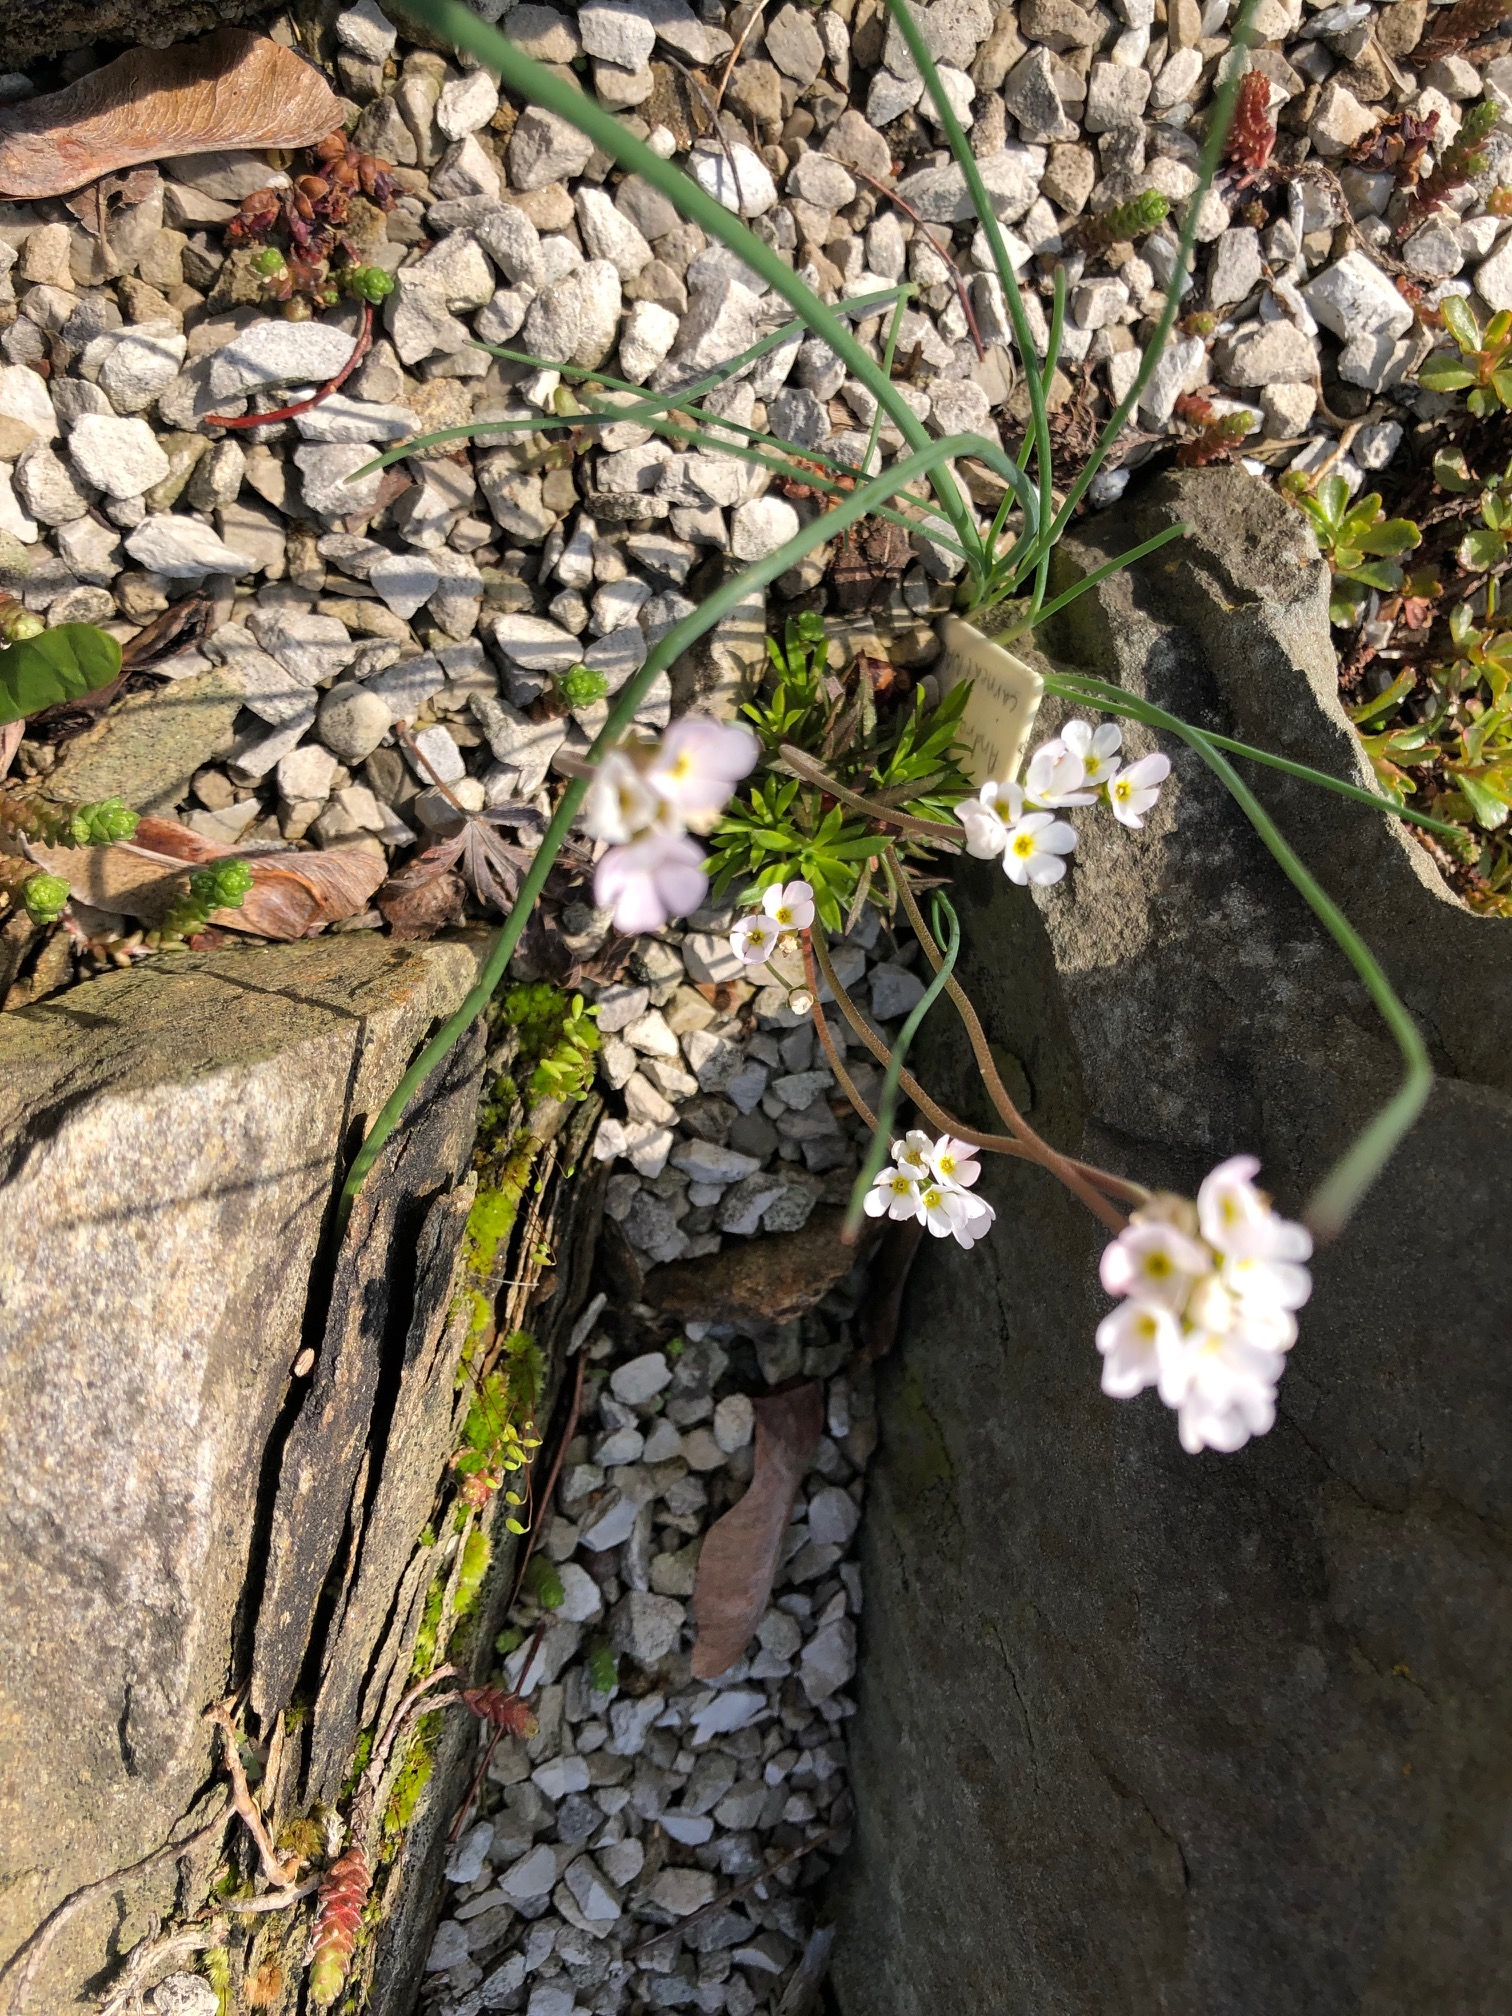 Draba in crevice